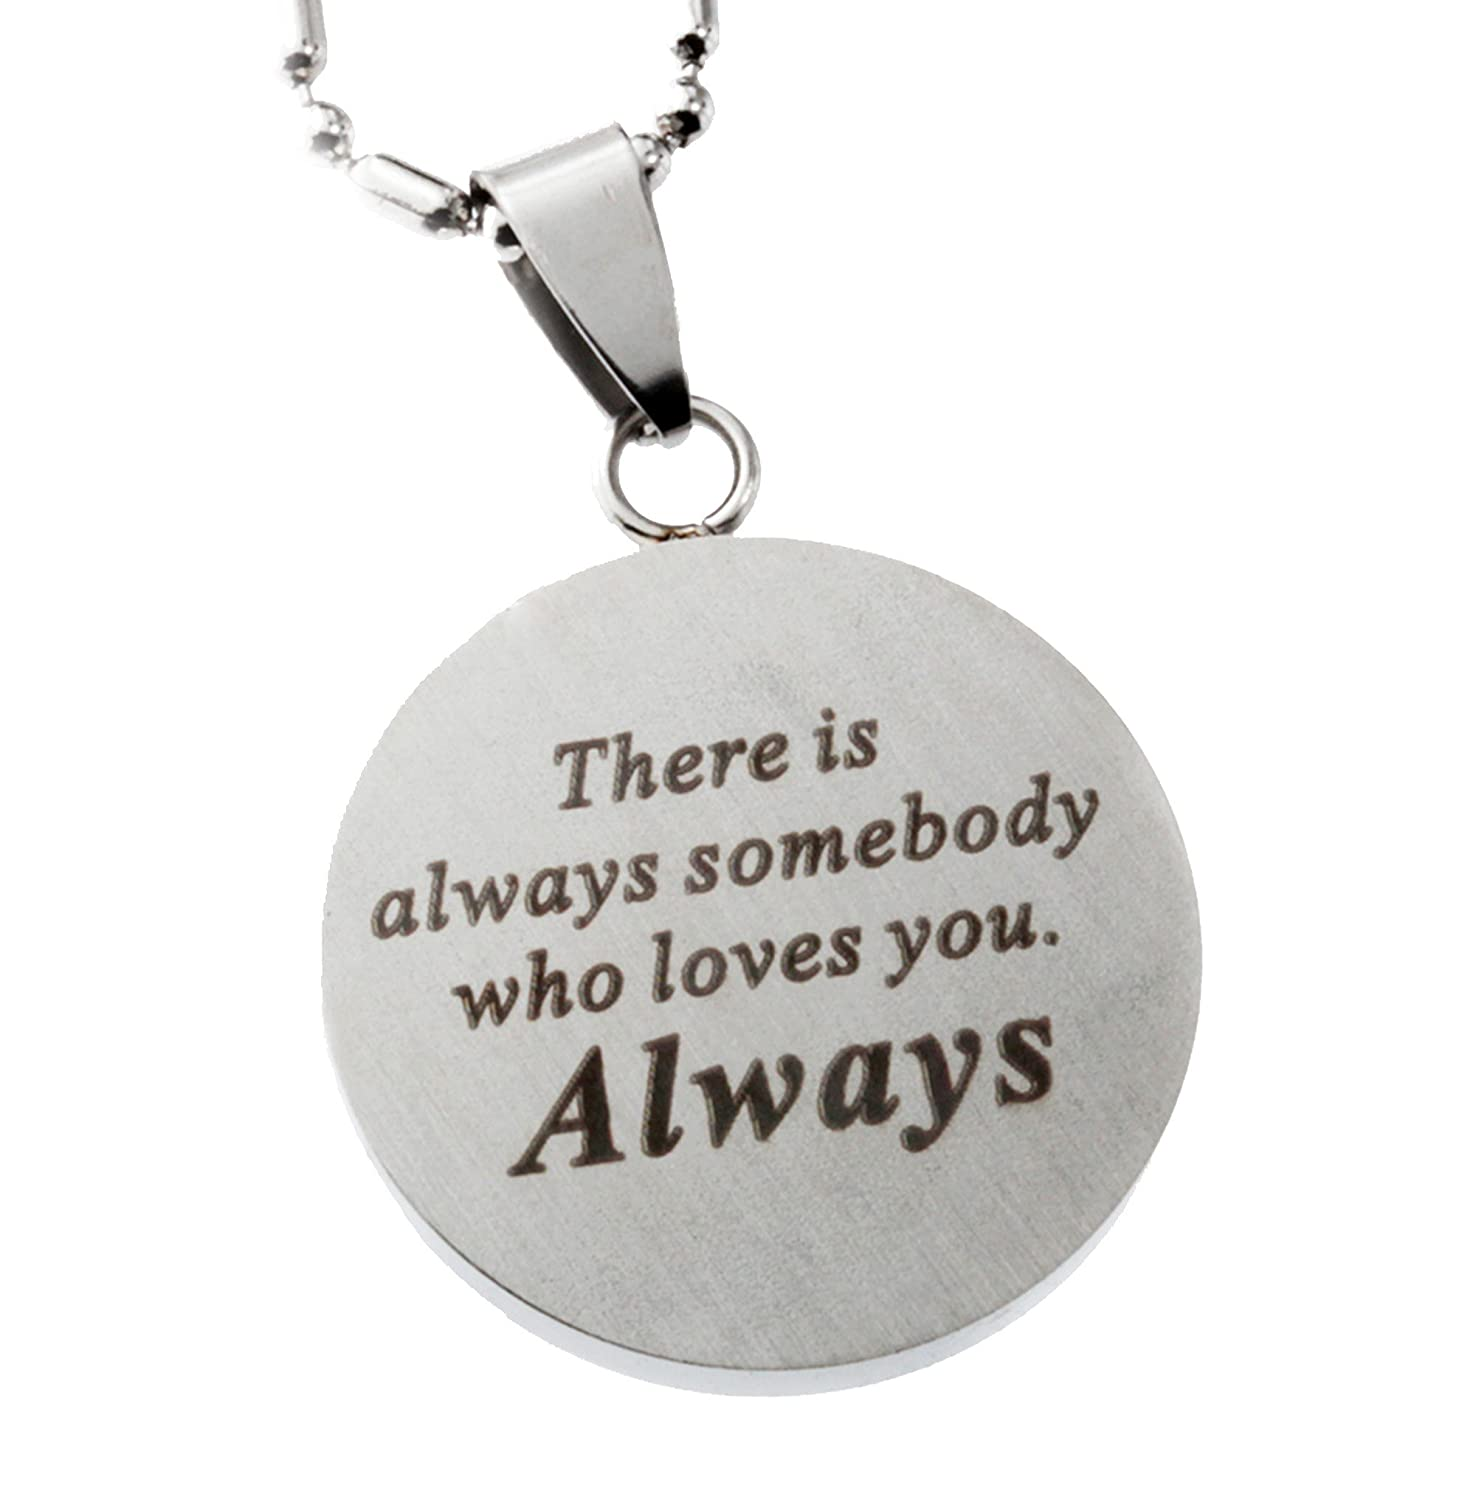 Jewelry Yin Yang Stainless Steel Pendant with Love Message R.H